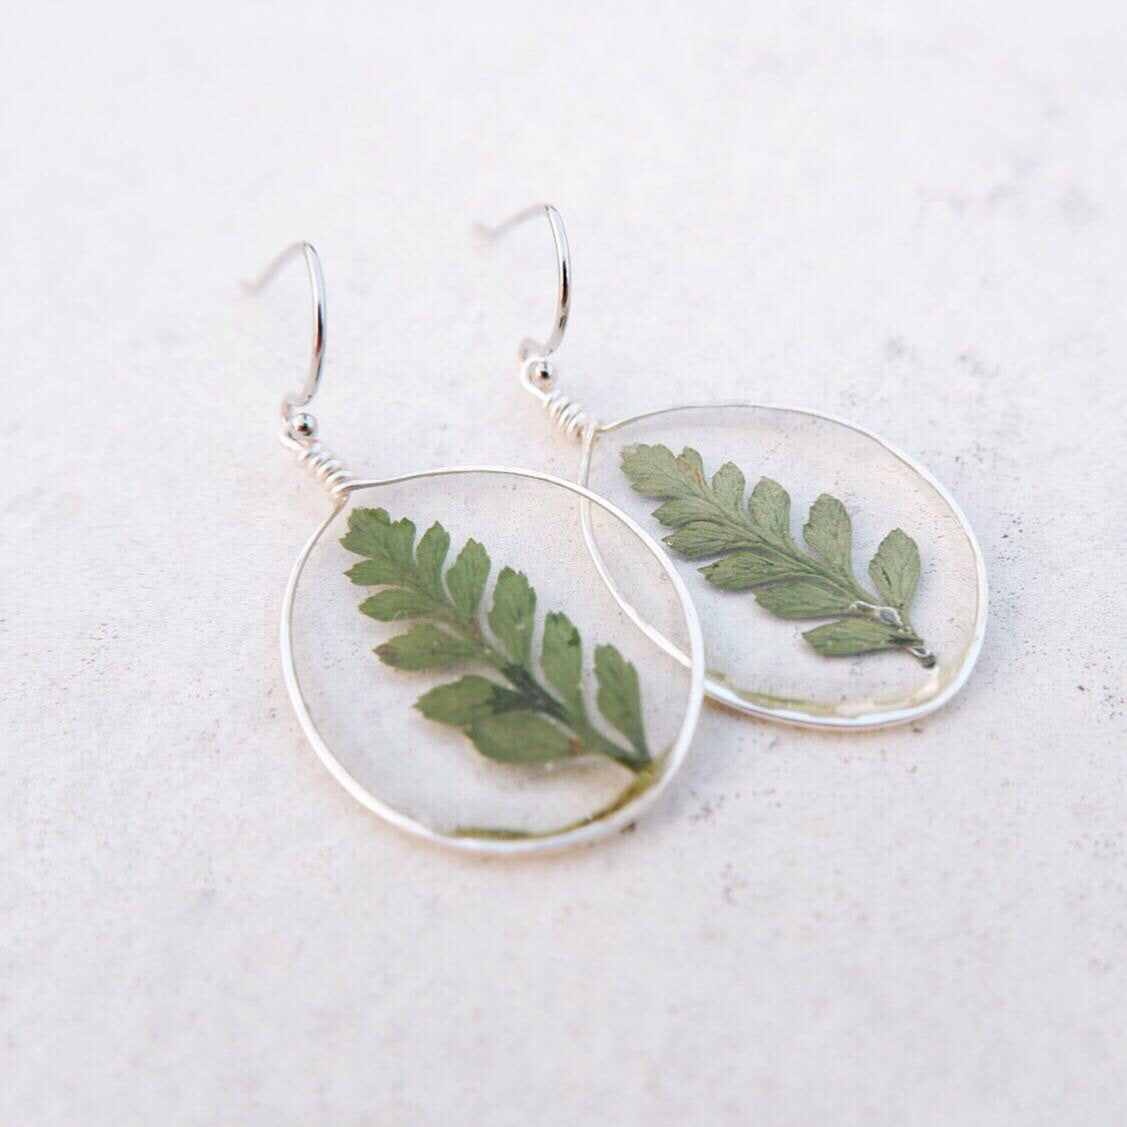 Photo of Pressed Flower Earrings, Resin Earrings, Wolf Tail Fern Earrings, Natural Style Earrings, Drop Earrings, Sterling Silver Hook, Gift For Her